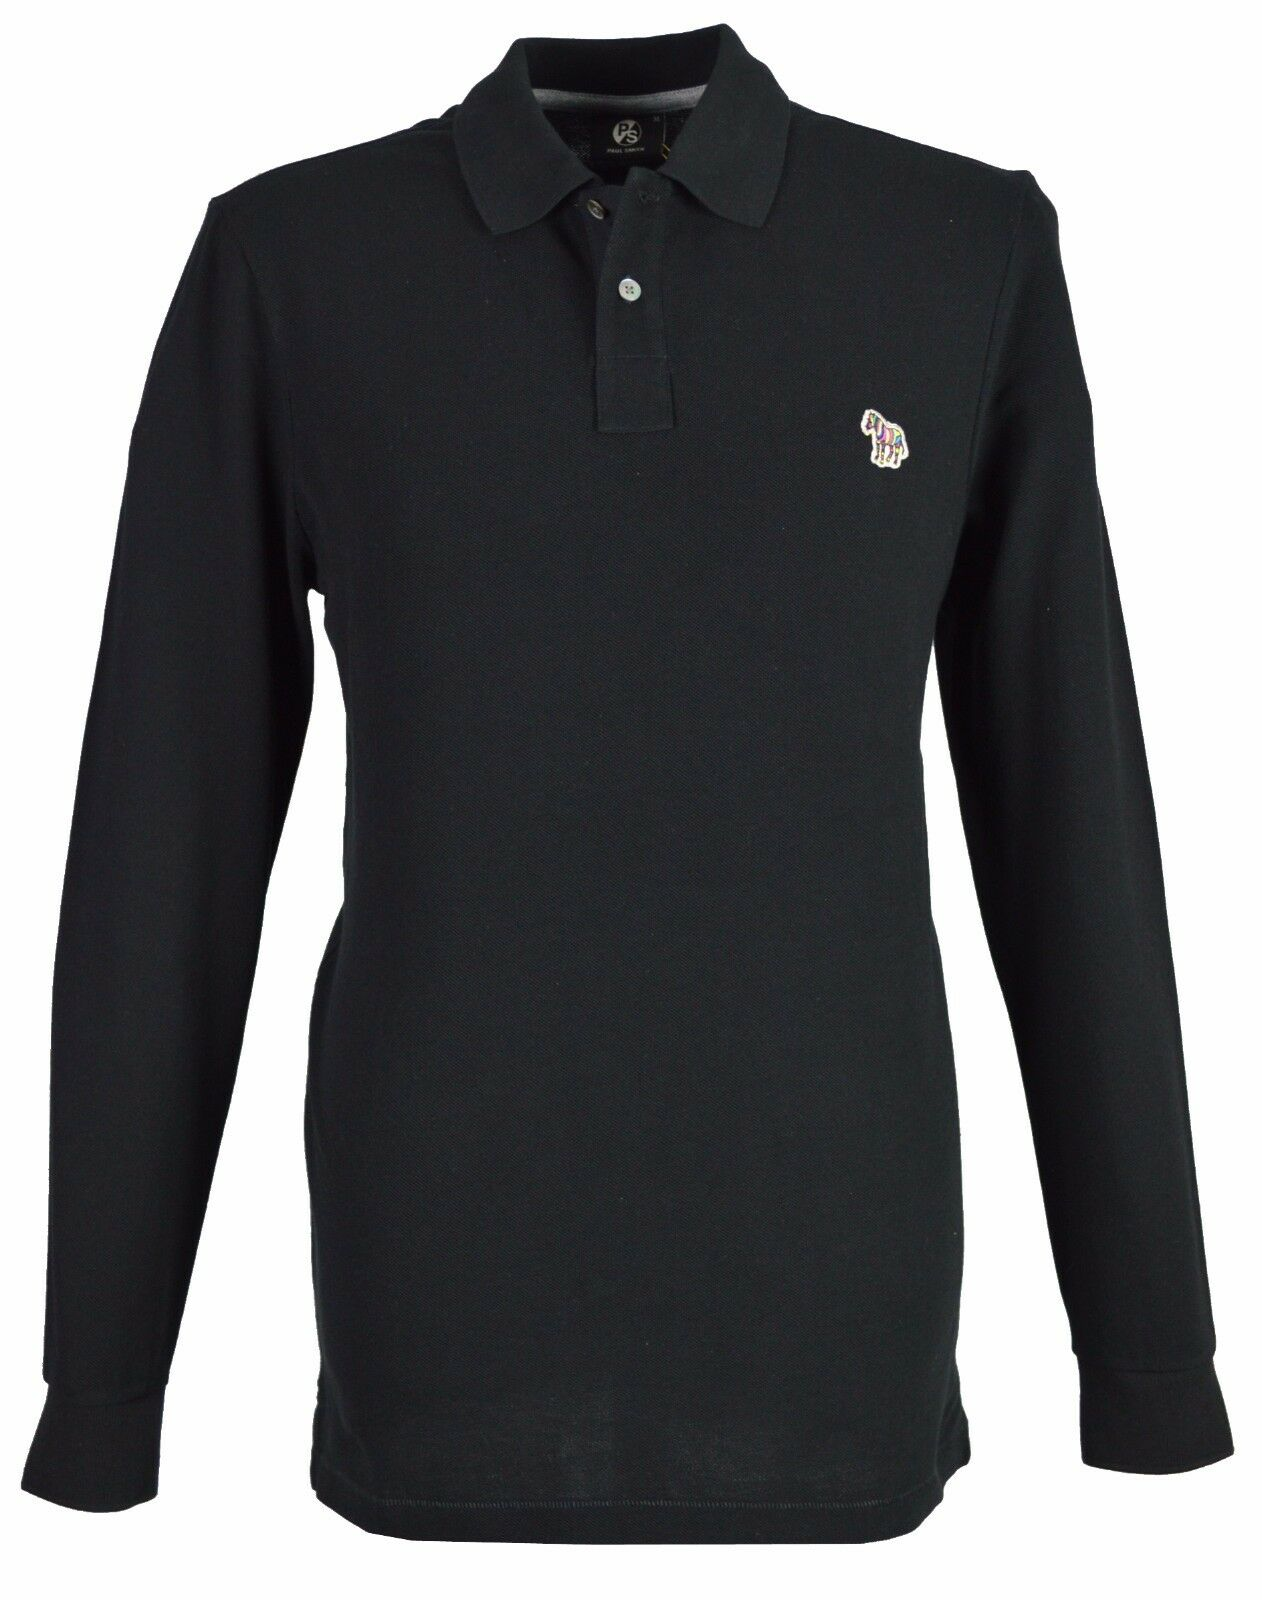 Paul Smith Uomo Maniche Lunghe Camicia Polo